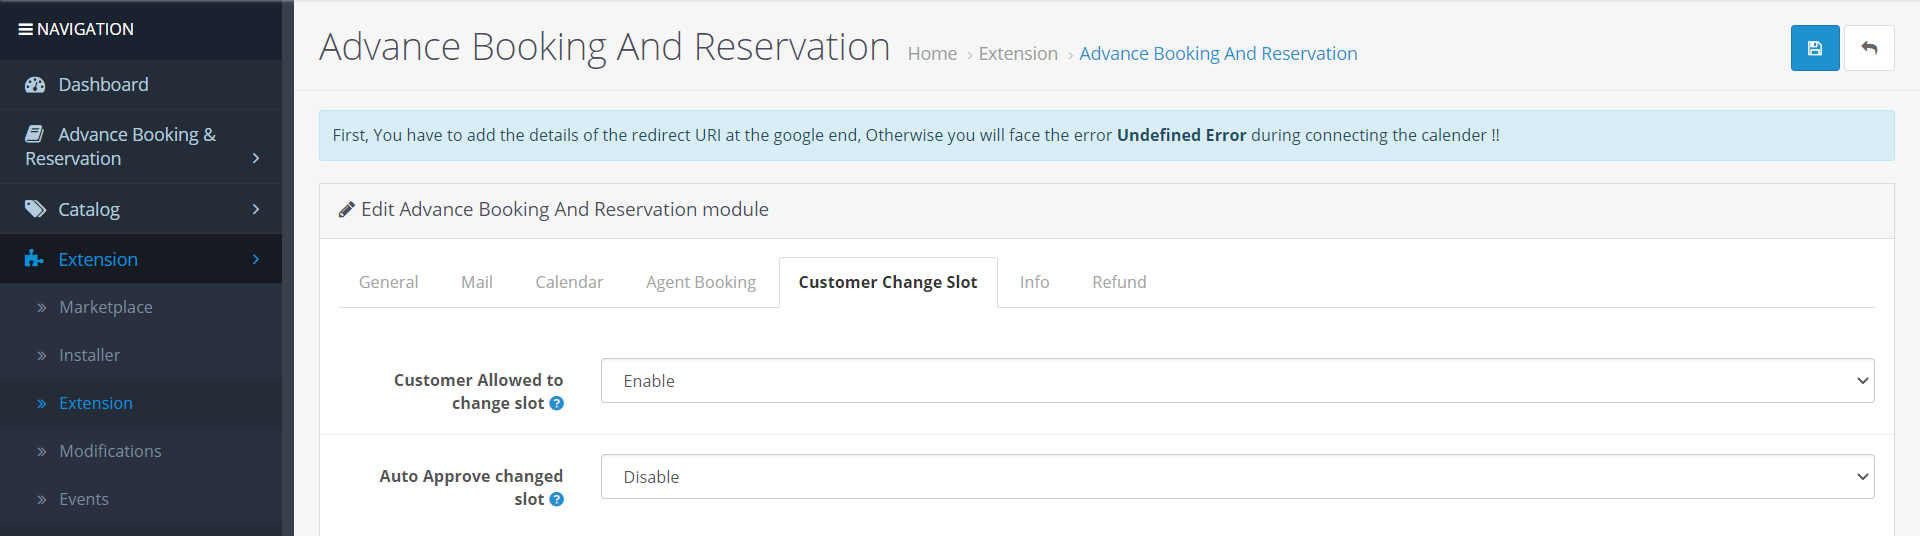 Advance-Booking-And-Reservation-05